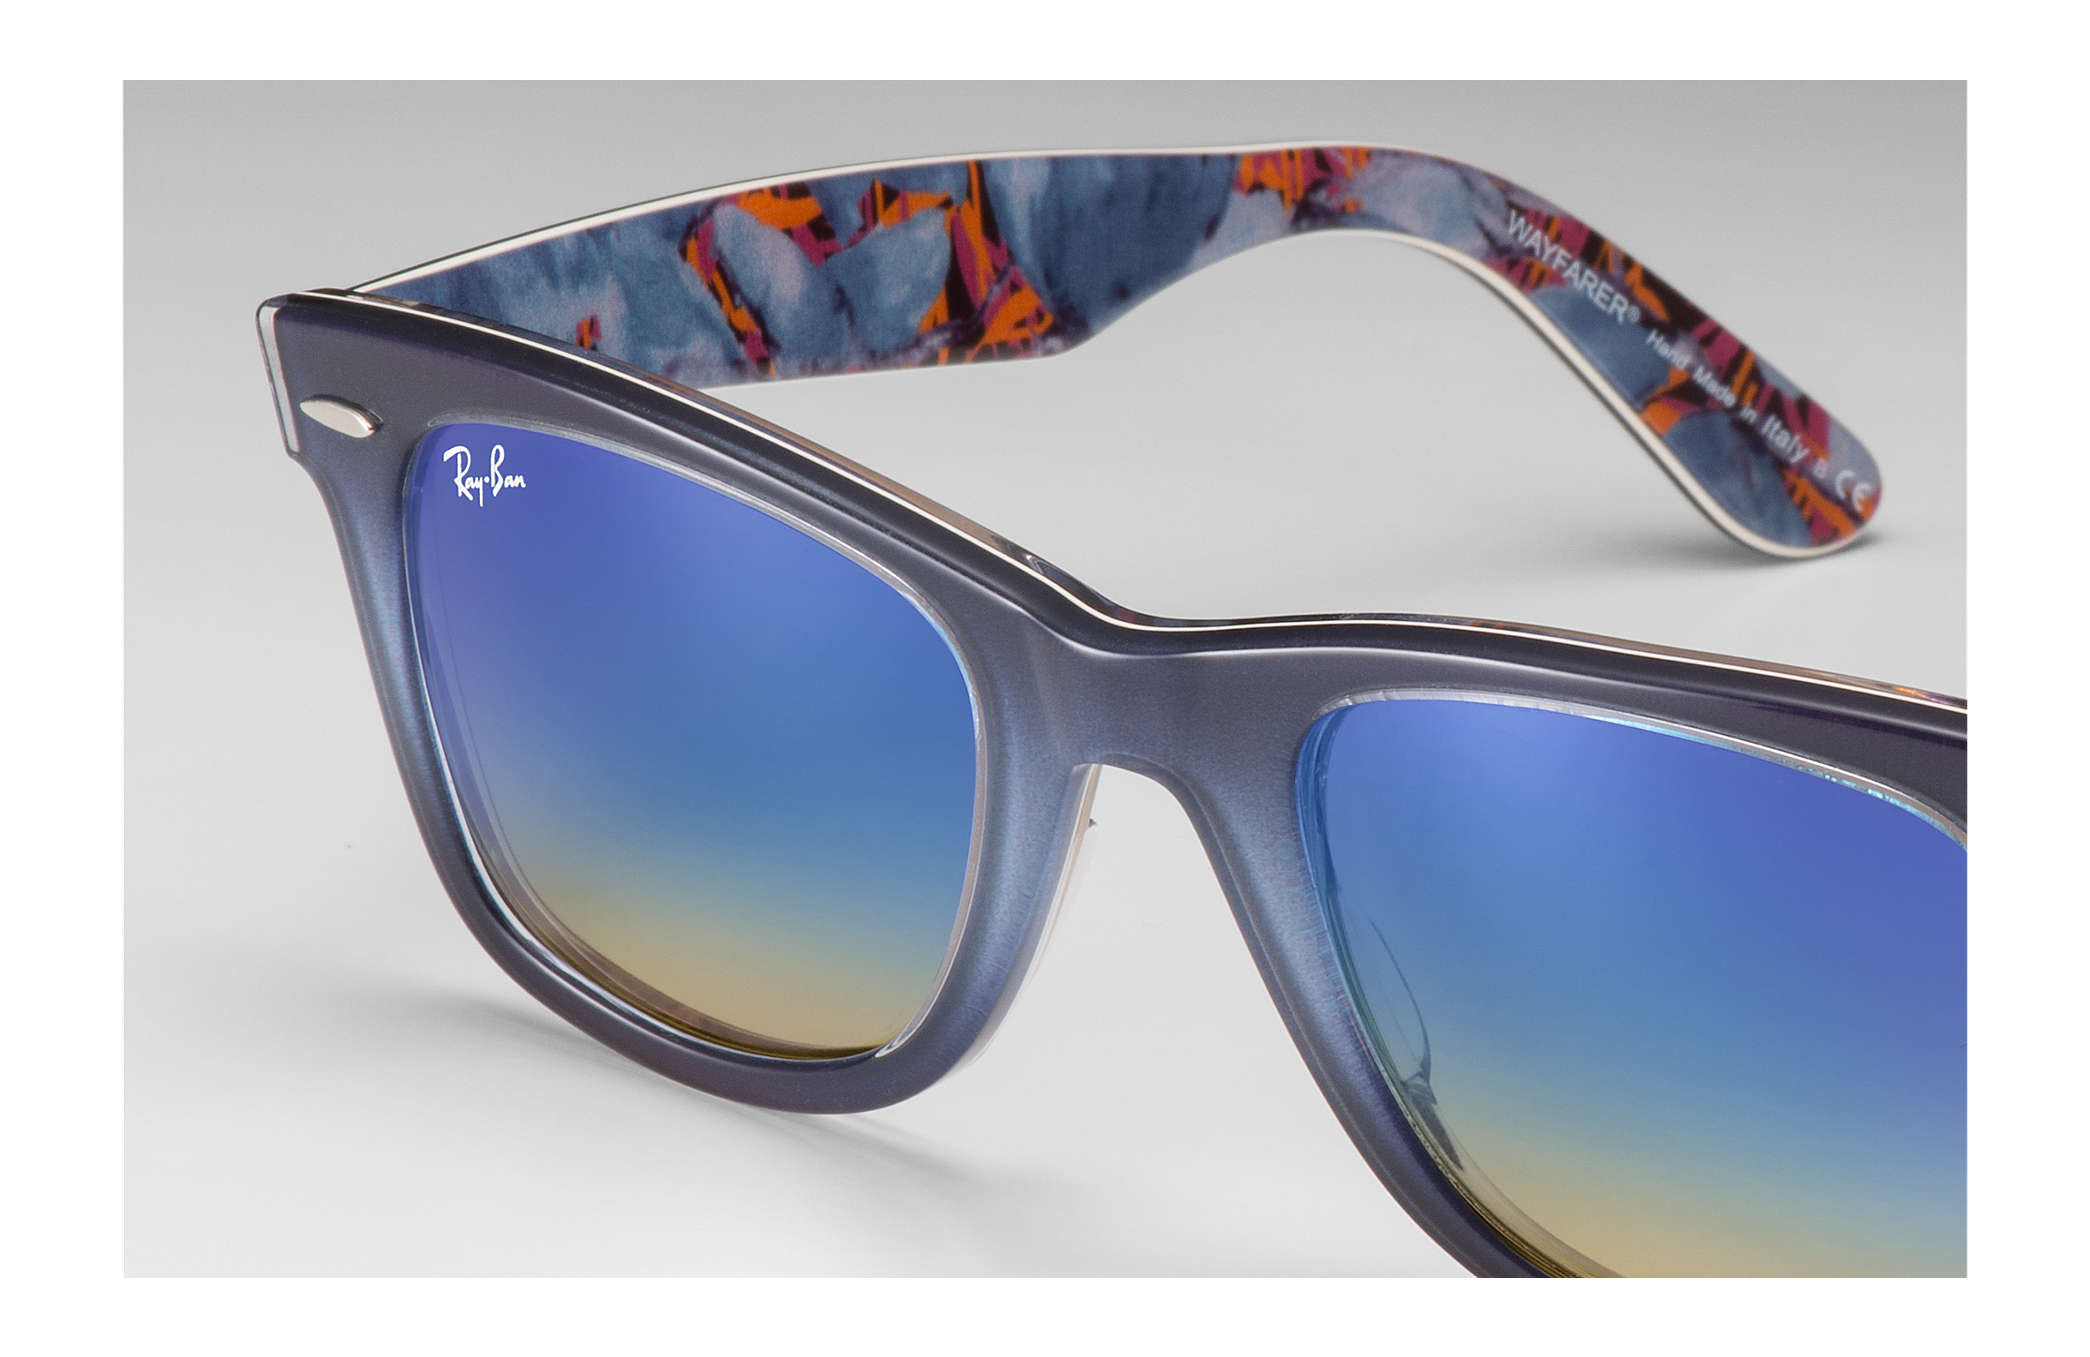 d3926c774b9e7 Ray-Ban Original Wayfarer Floral RB2140 Grey - Acetate - Blue Lenses ...